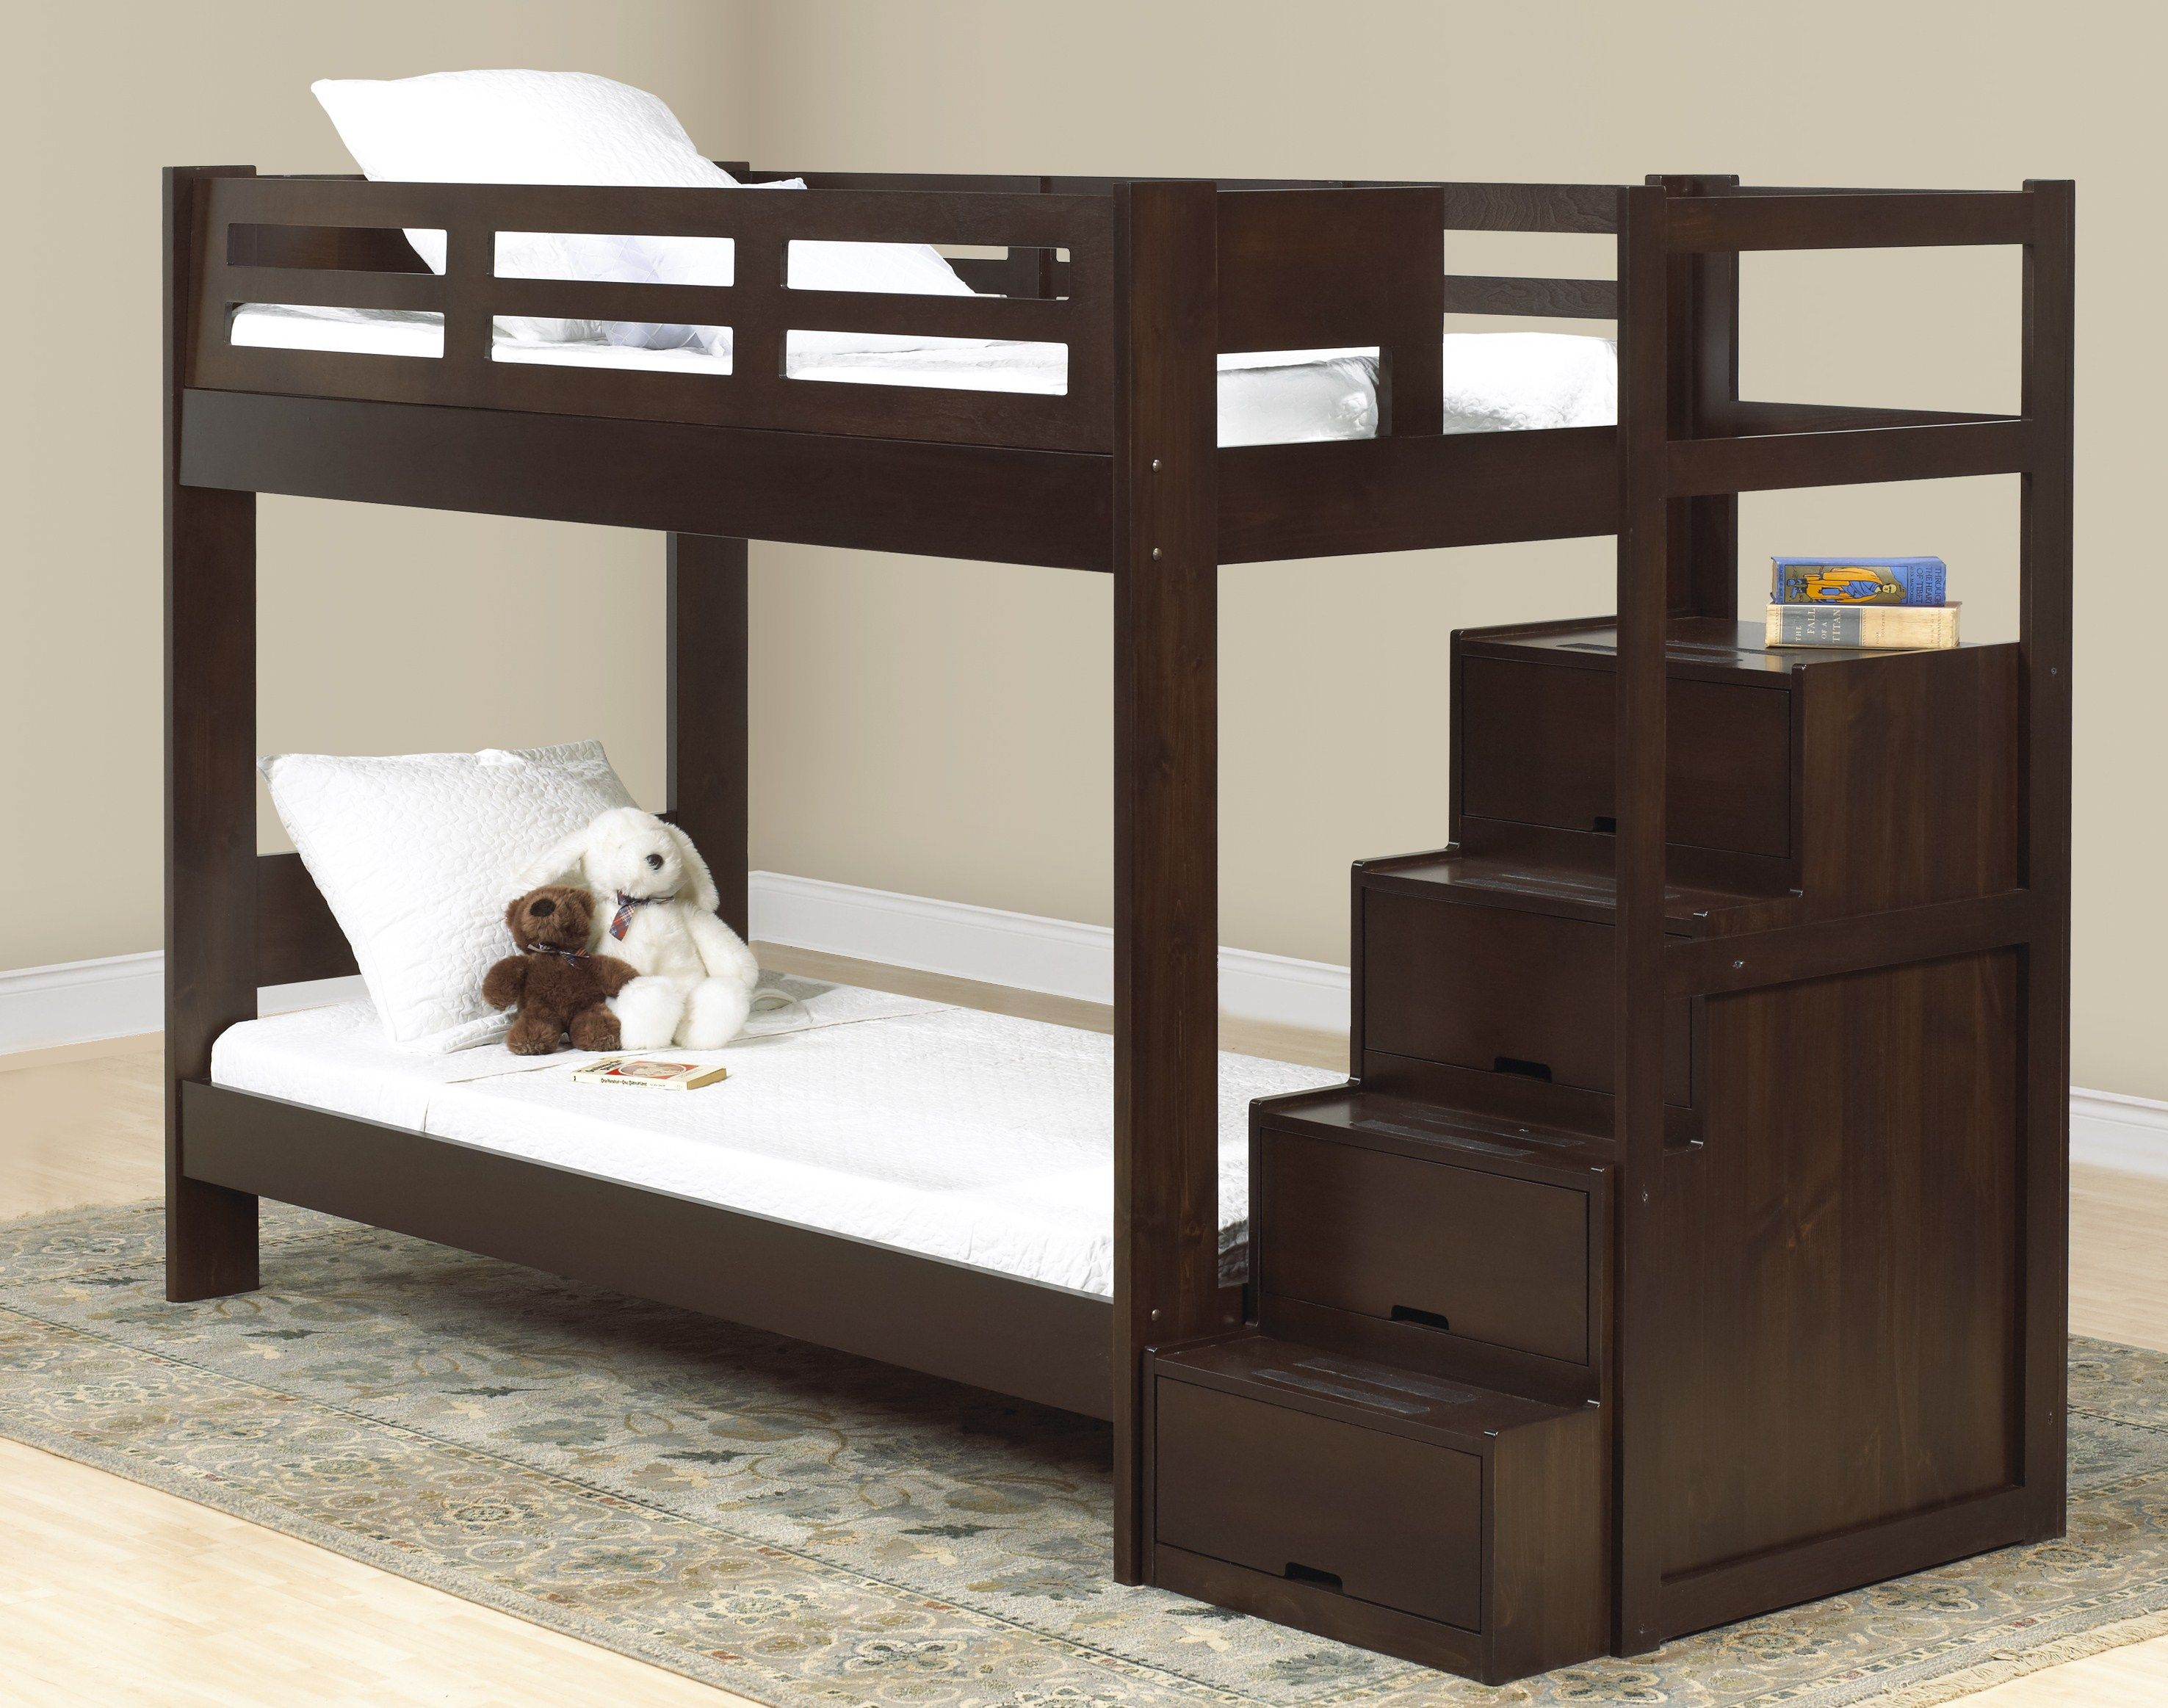 Modern double bunk beds - Bunk Beds Pine And More Check Out Our Range Of Bunk Beds And Loft Beds Durability And Style Shop Bunk Beds Lofts At And Save Find